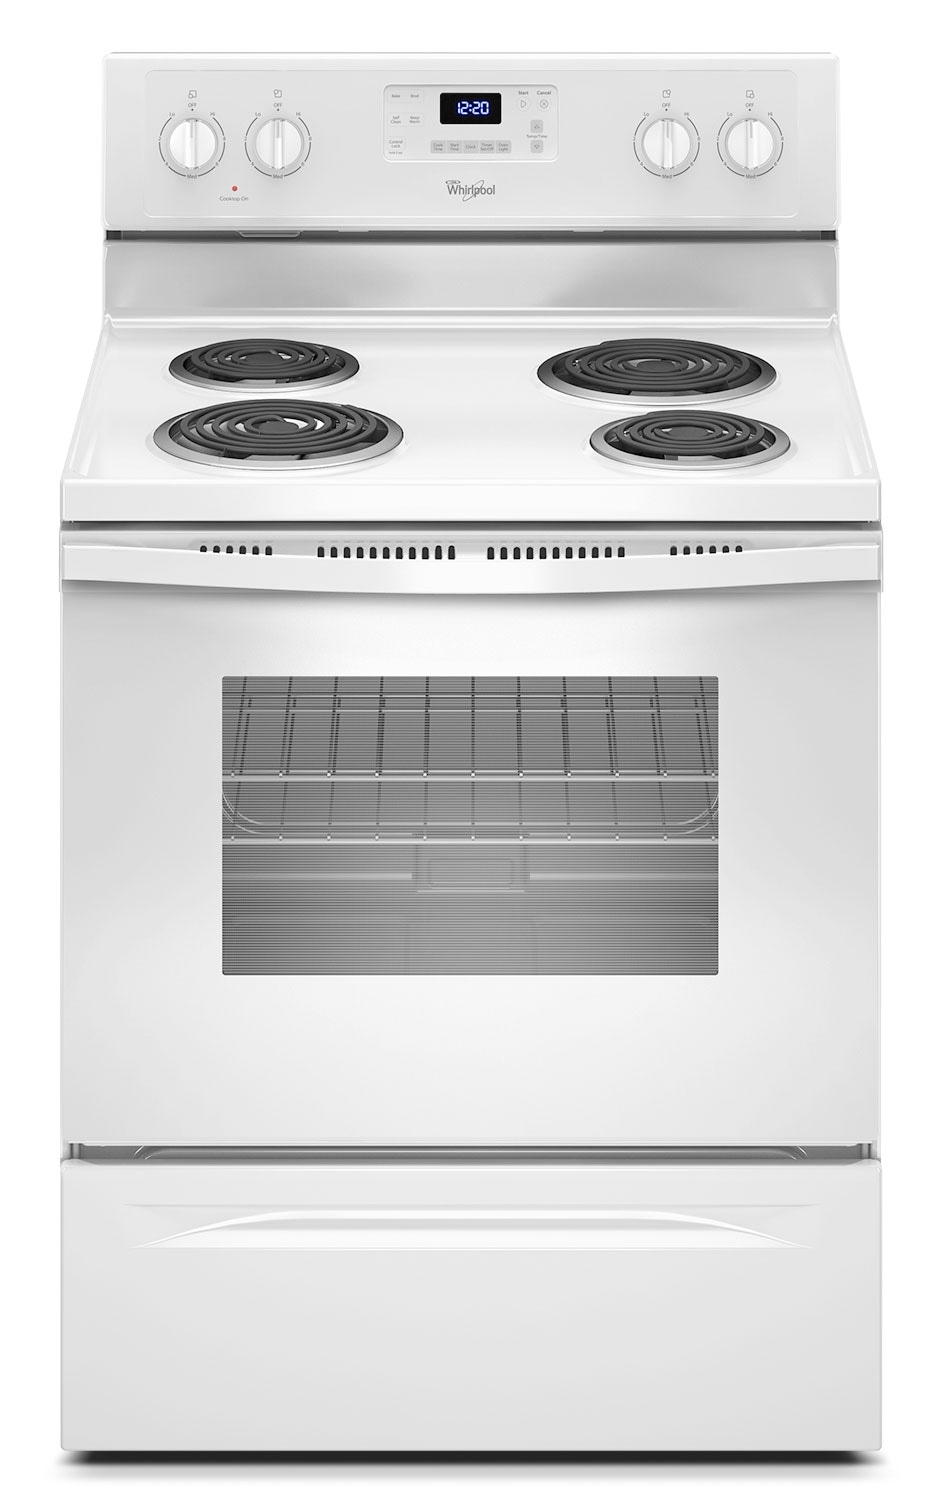 Cooking Products - Whirlpool 4.8 Cu. Ft. Electric Range with AccuBake® System - White